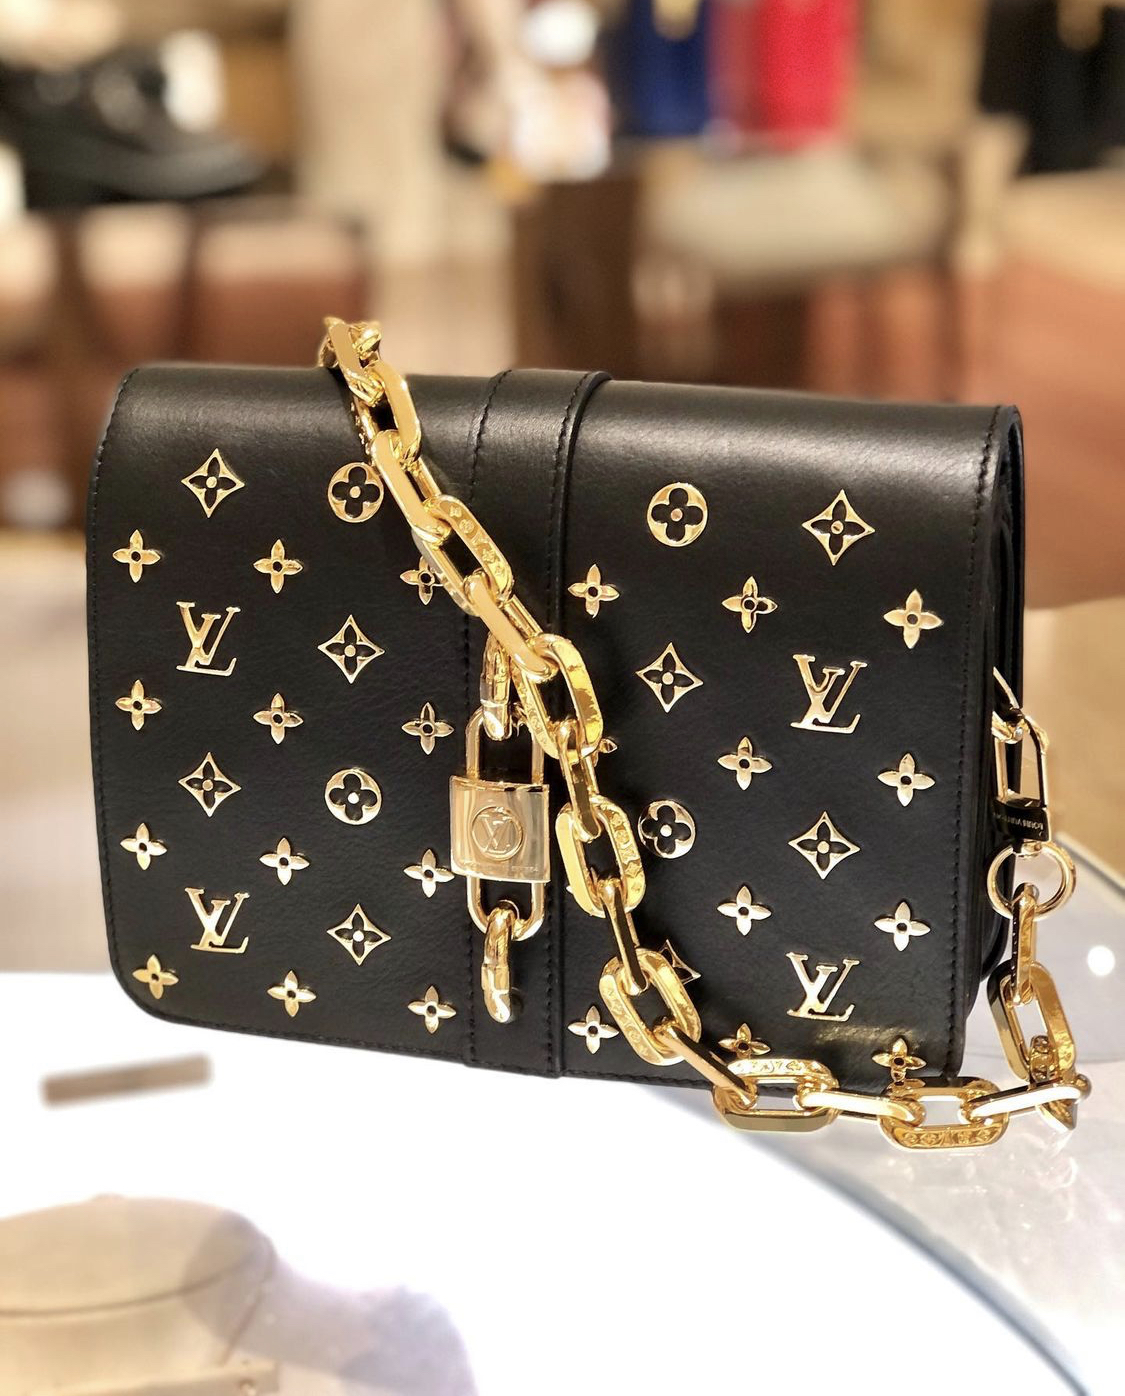 lv rendez vous bag in black with gold detail closeup merfylvsg